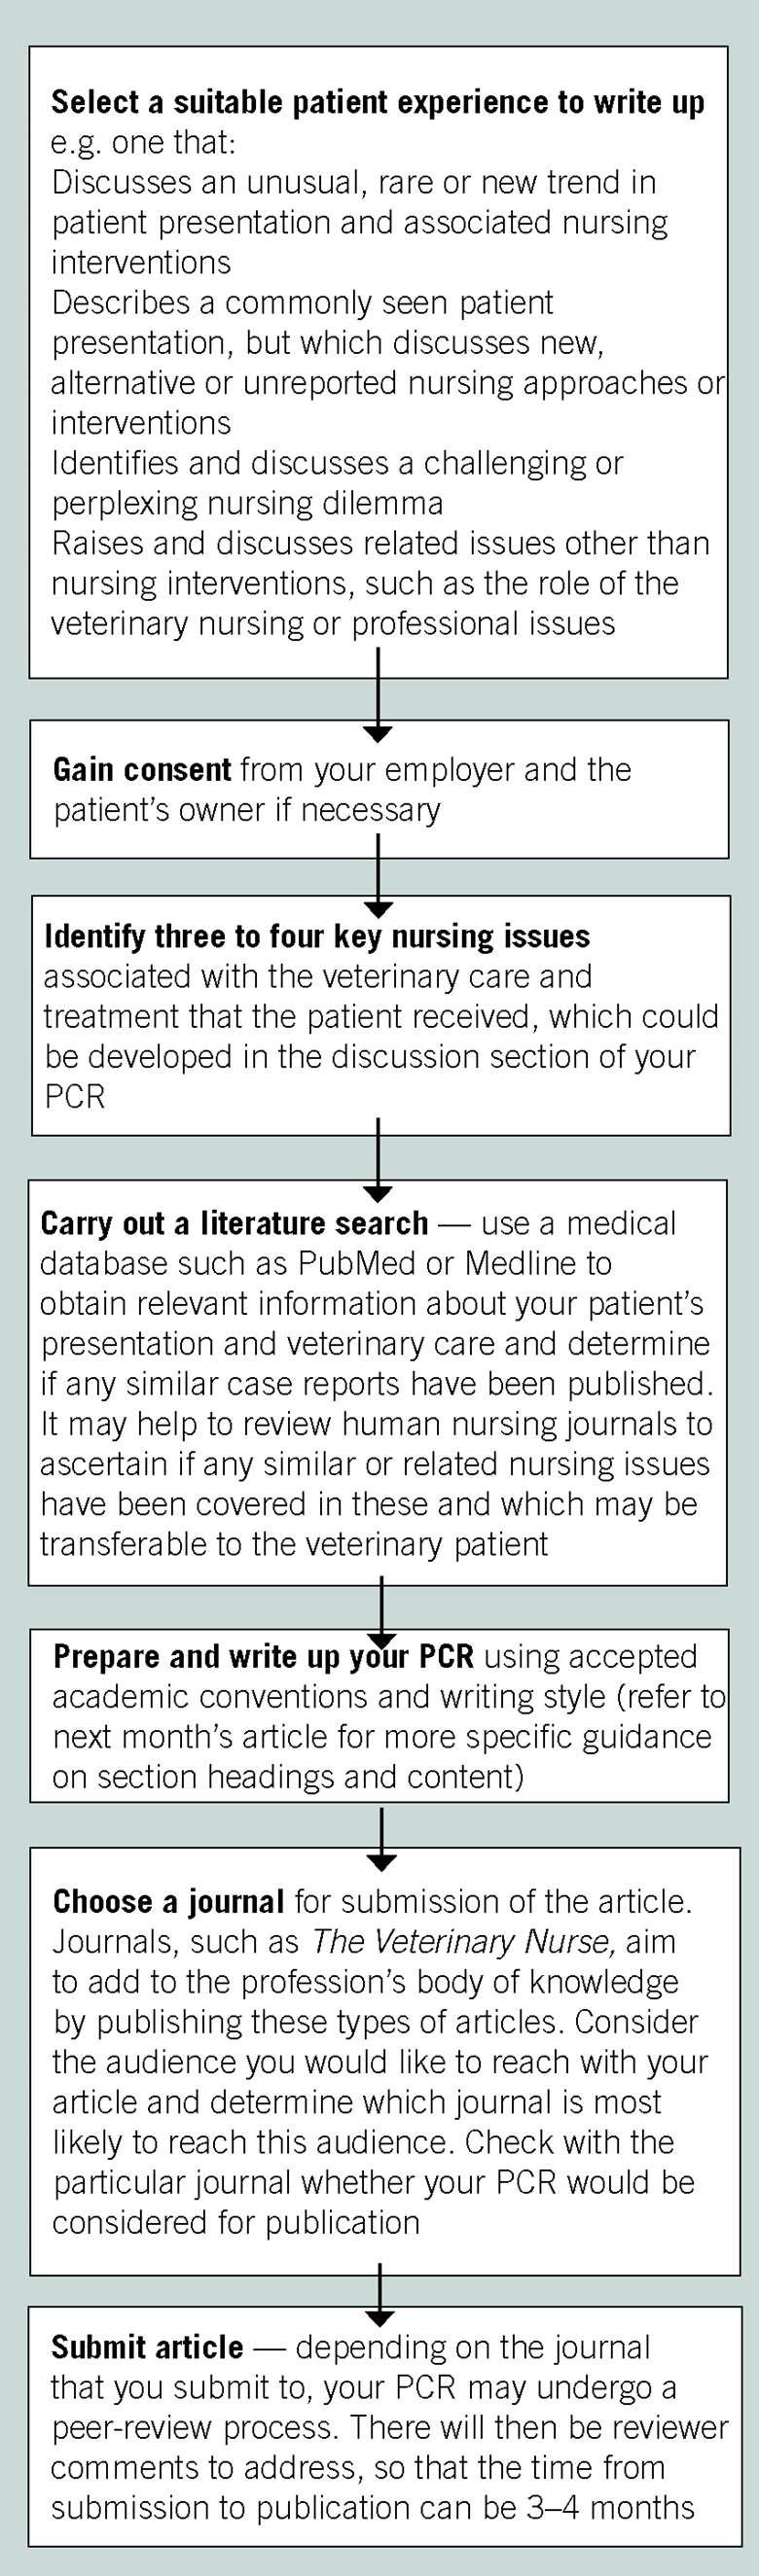 Writing patient care reports: author guidelines for VNs